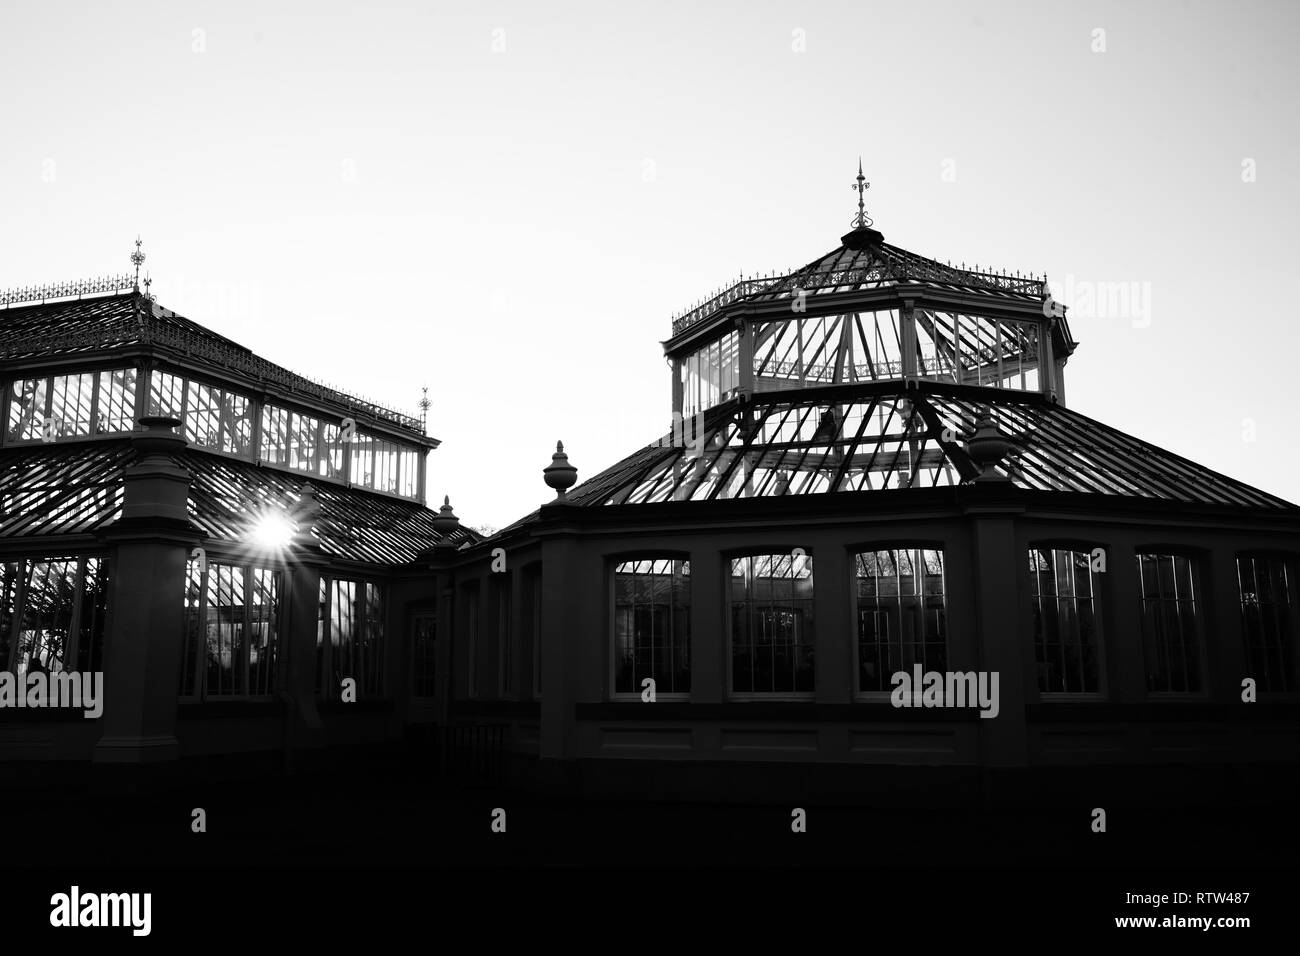 Kew Gardens is a botanical garden in London with the most diverse botanical and mycological collection established as early as 1840 - Stock Image